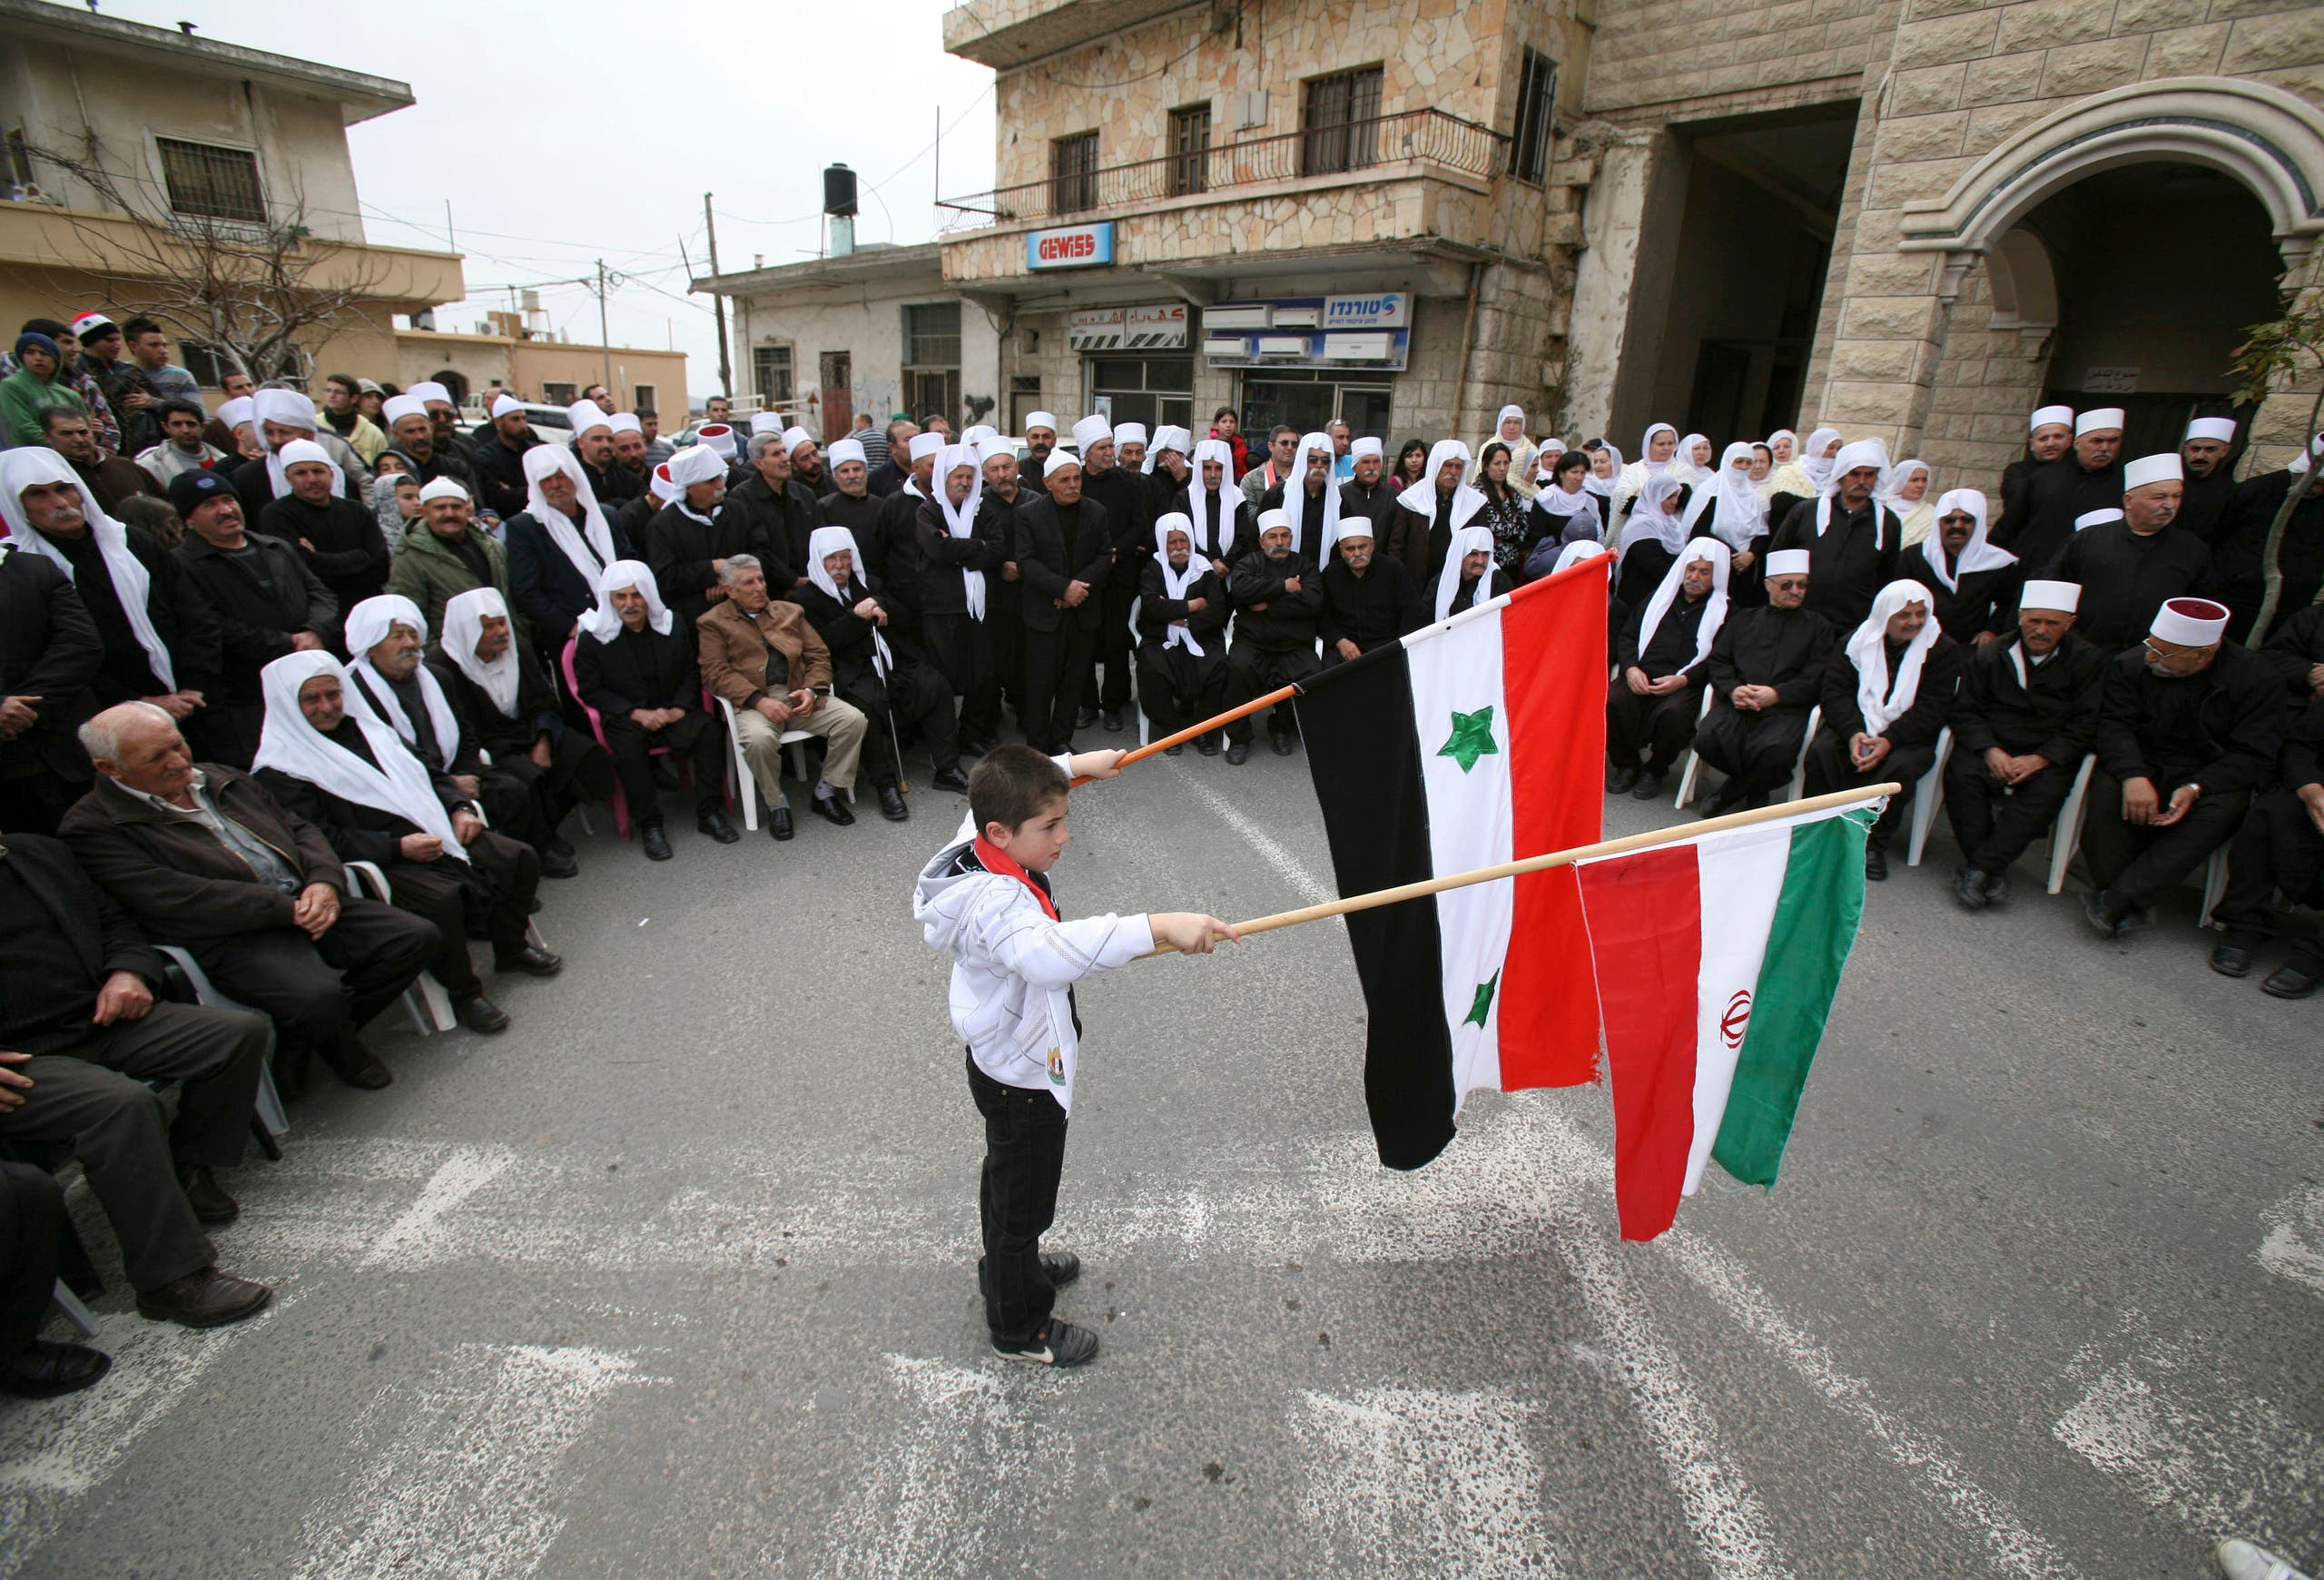 A boy holds flags of Iran and Syria during a rally in the Druze village of Majdal Shams on the Golan Heights, which stand at the heart of a long-standing conflict between Israel and Syria February 14, 2012. (File photo: Reuters)